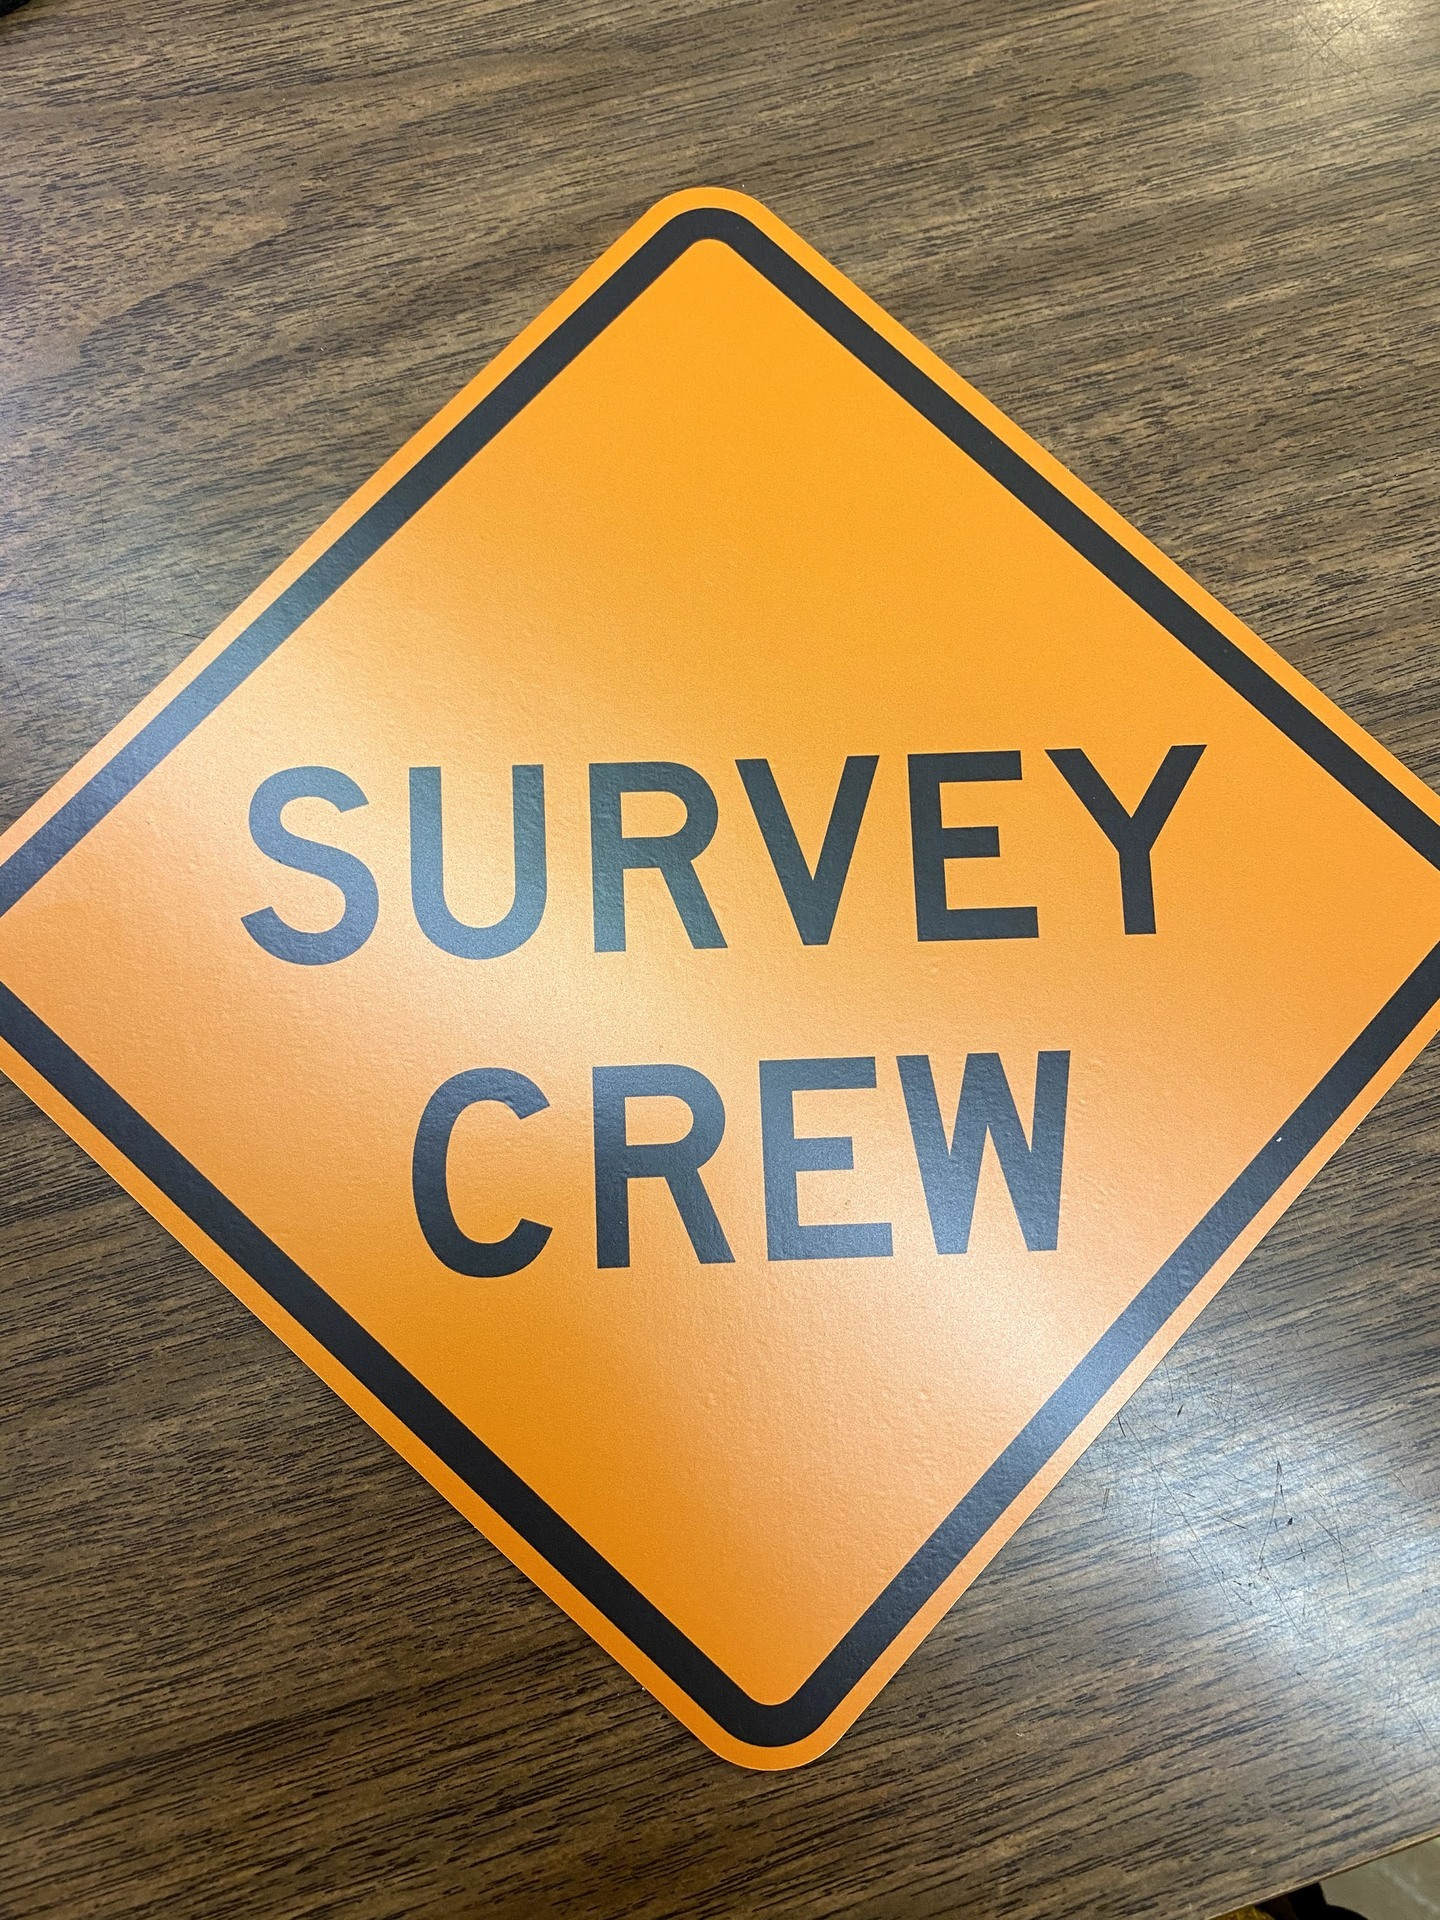 Alysson's photograph of their Survey Crew Magnet